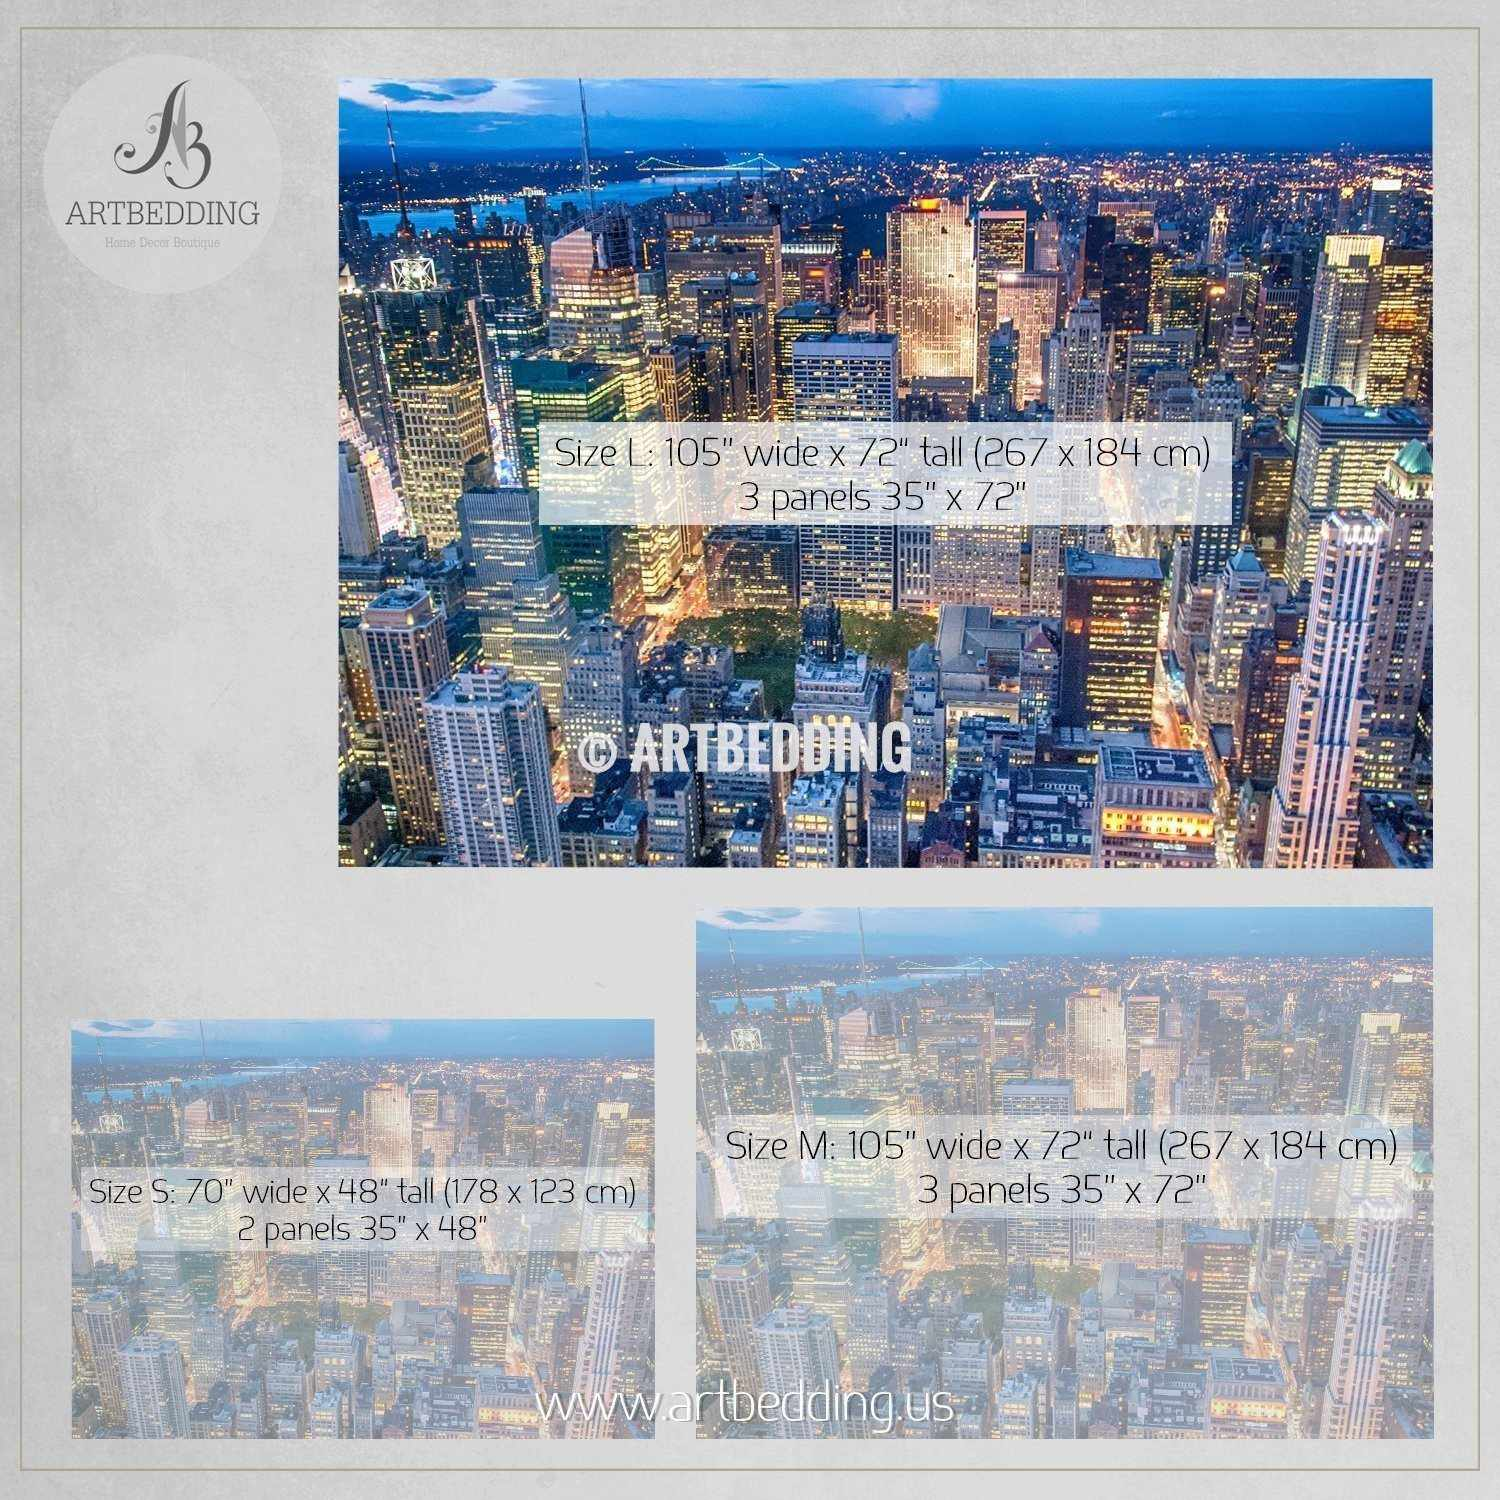 wall murals peel and stick vinyl self adhesive tagged new york city skyline wall mural usa photo mural usa wall decor wall mural